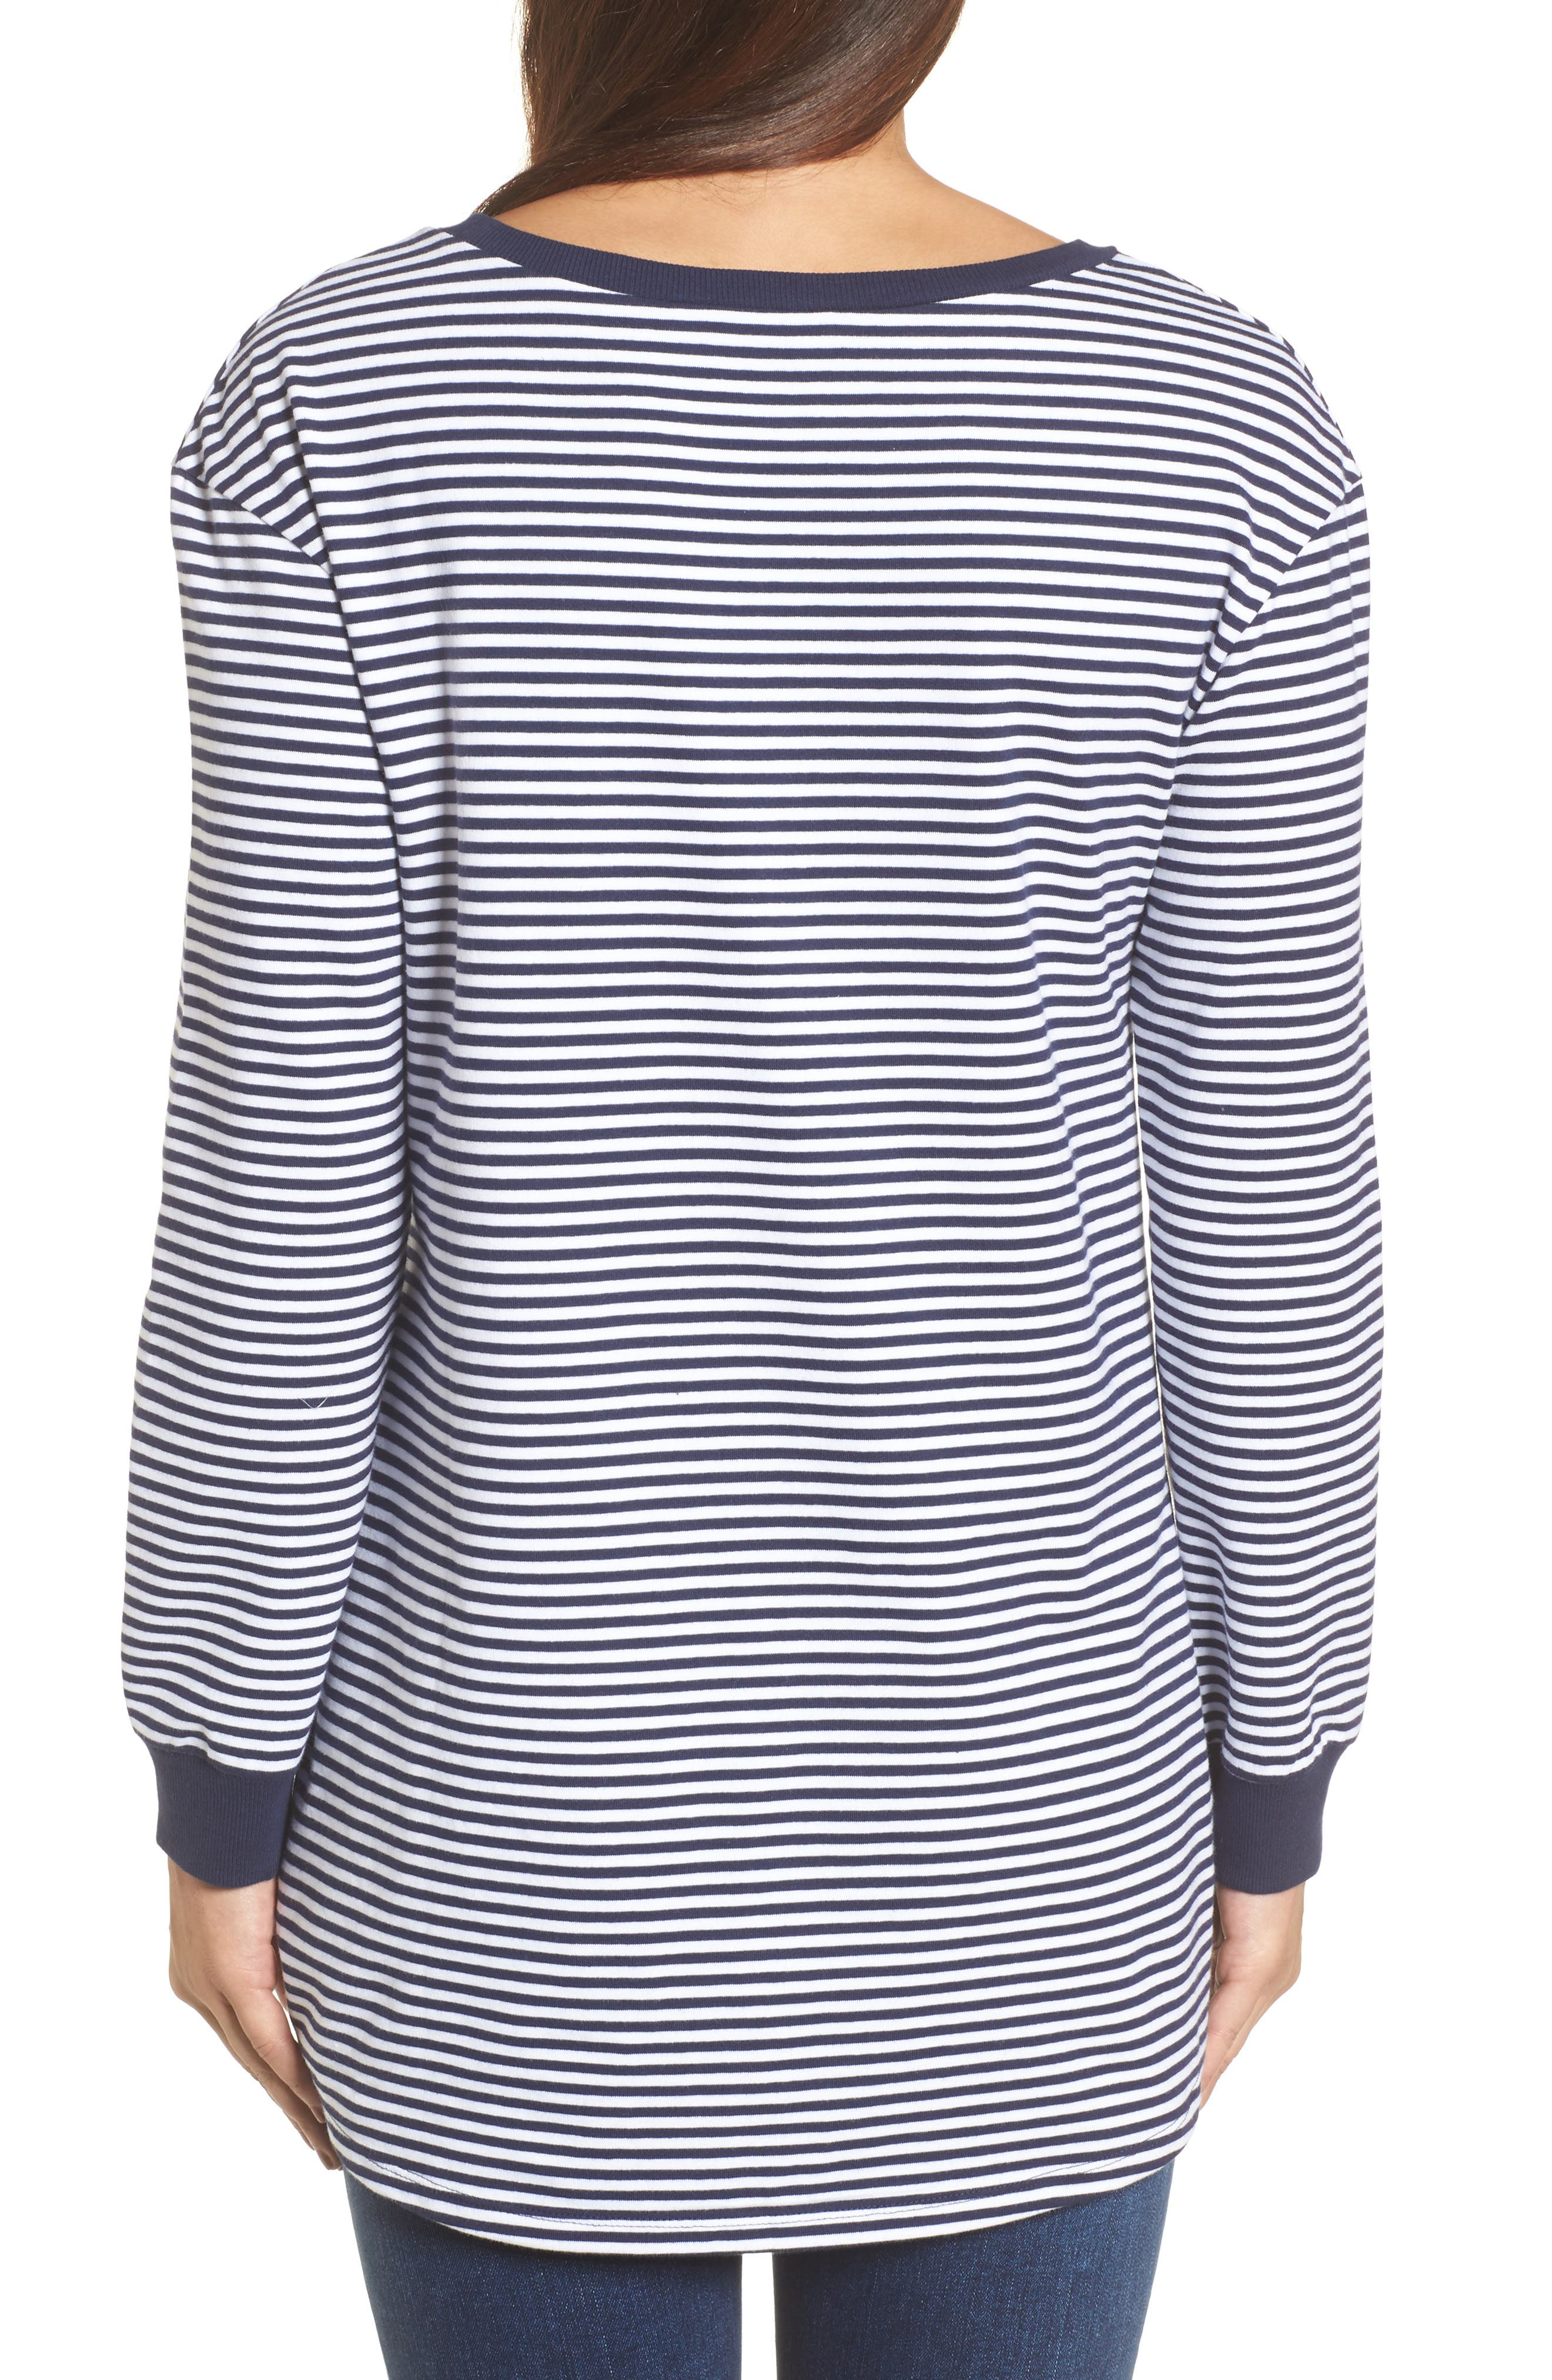 Ruched Front Tunic Sweatshirt,                             Alternate thumbnail 5, color,